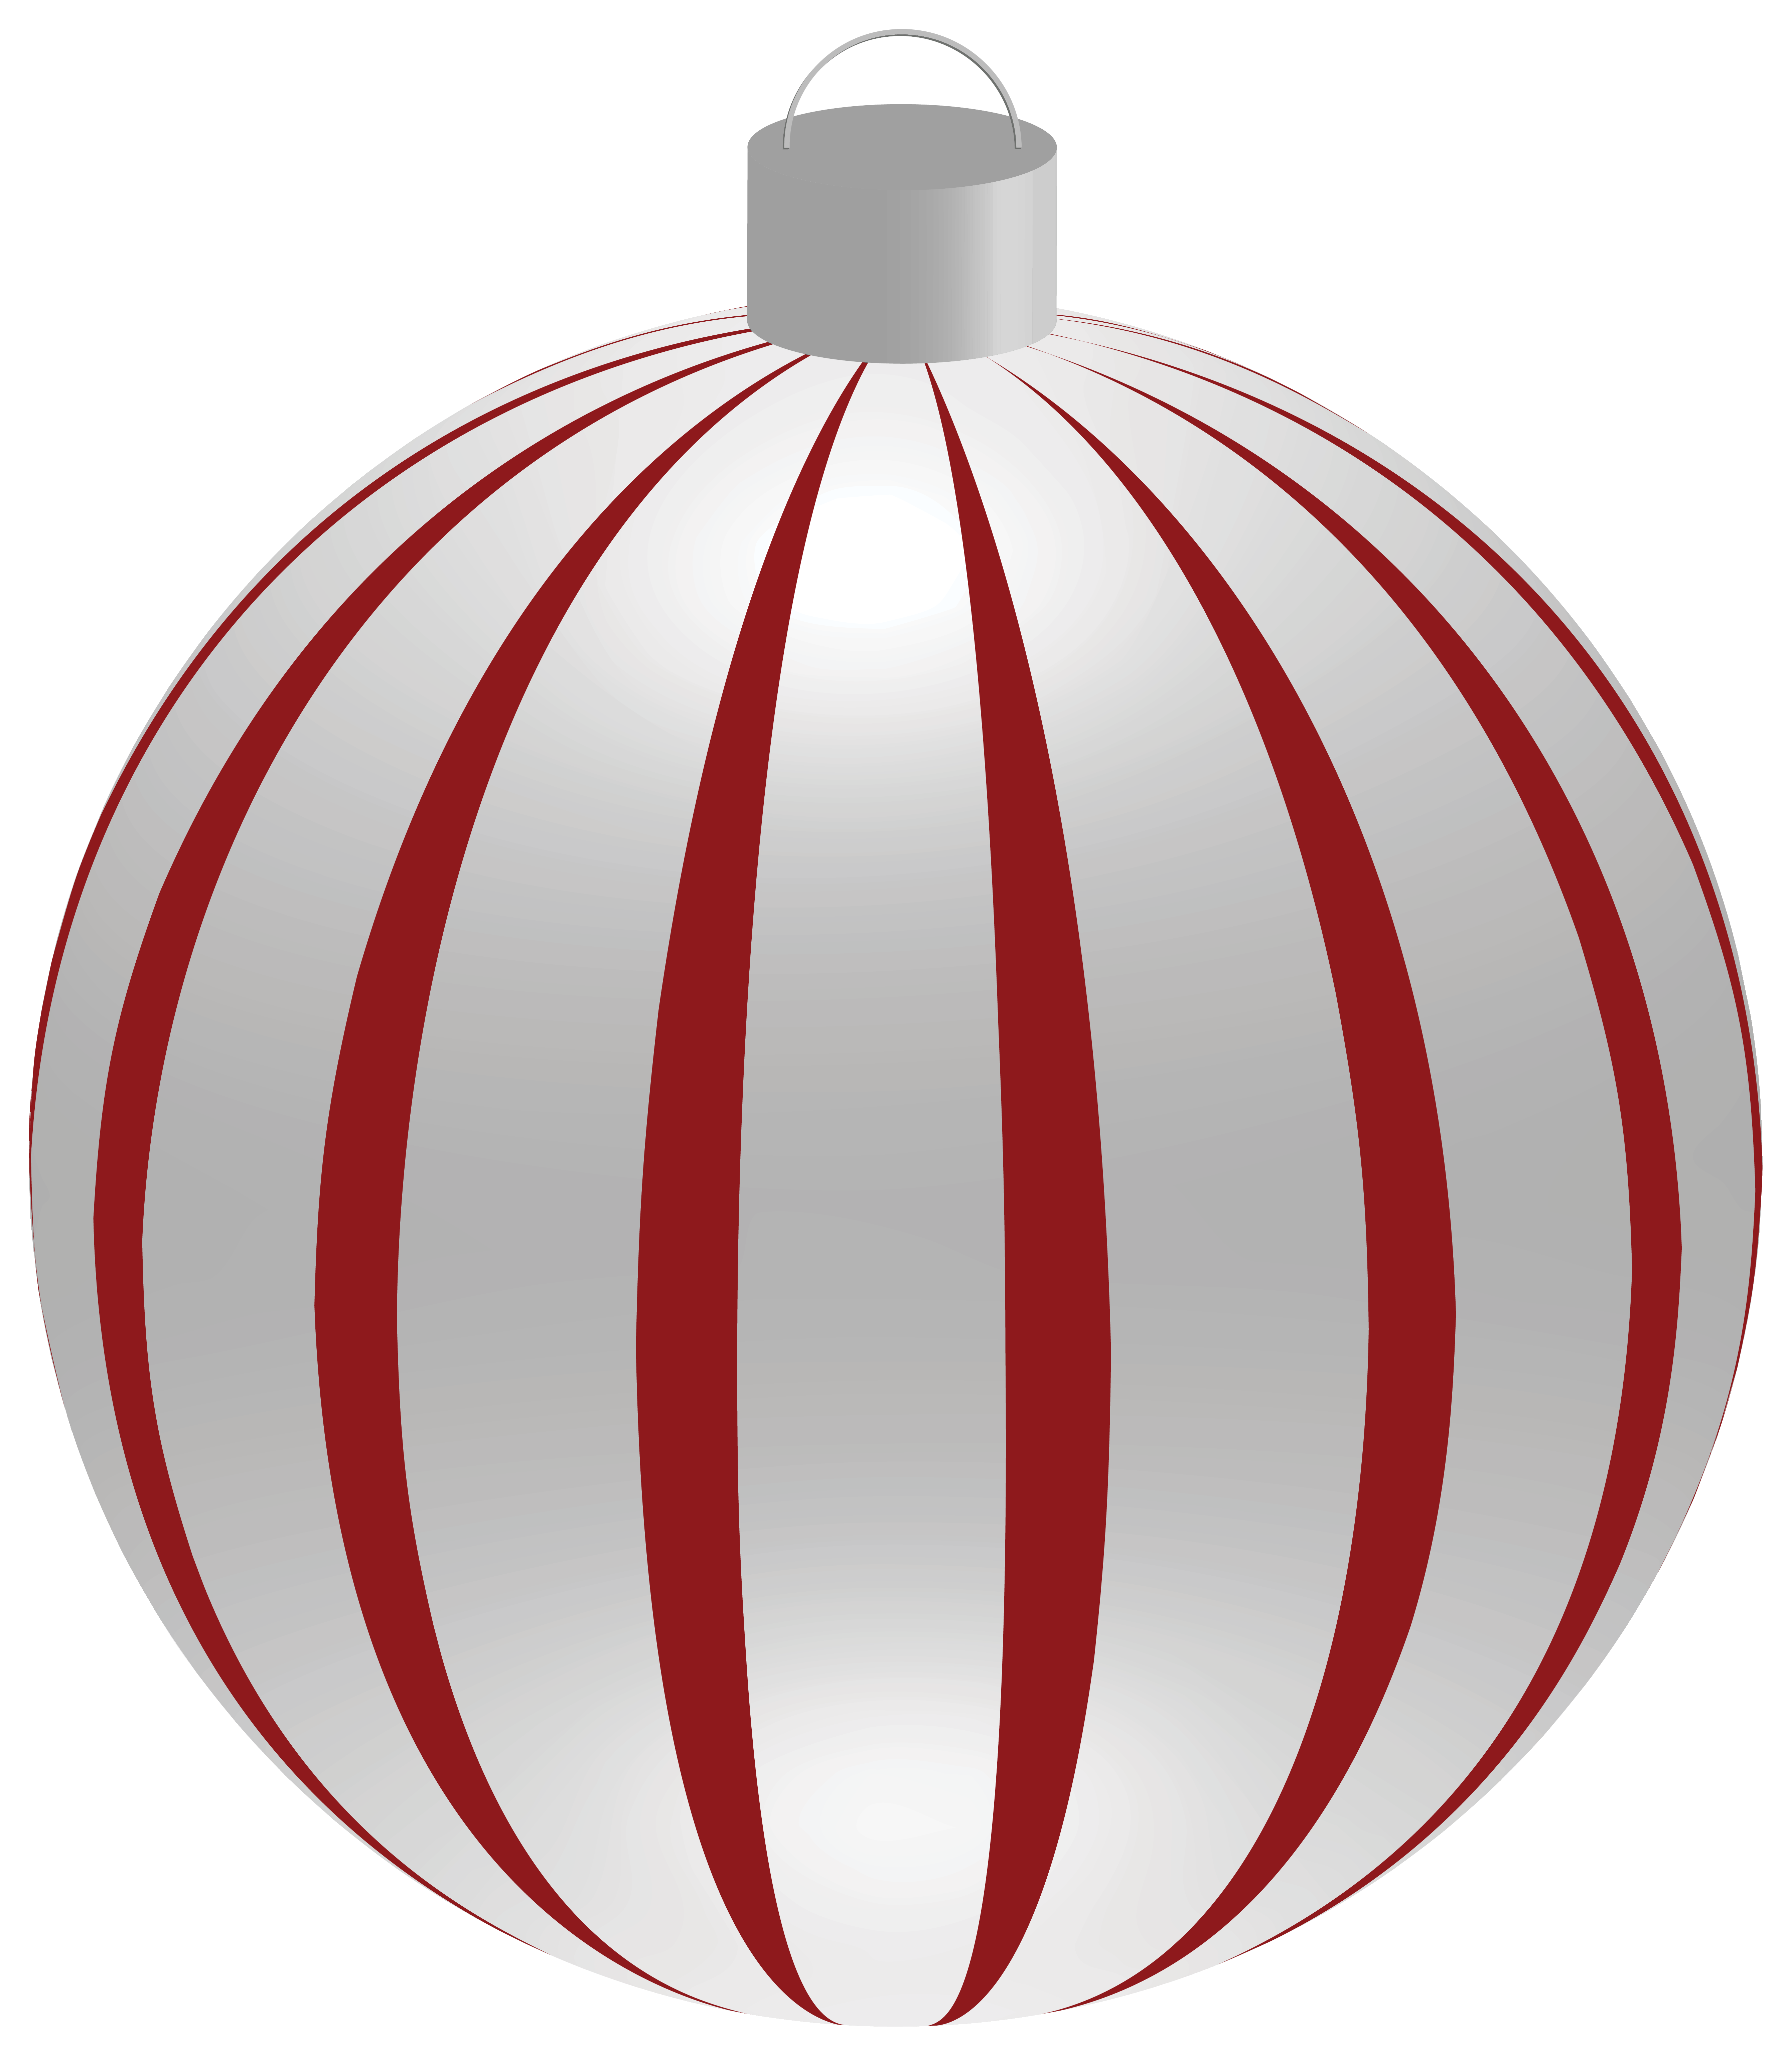 Gray christmas ornaments png. Striped ball with clipart